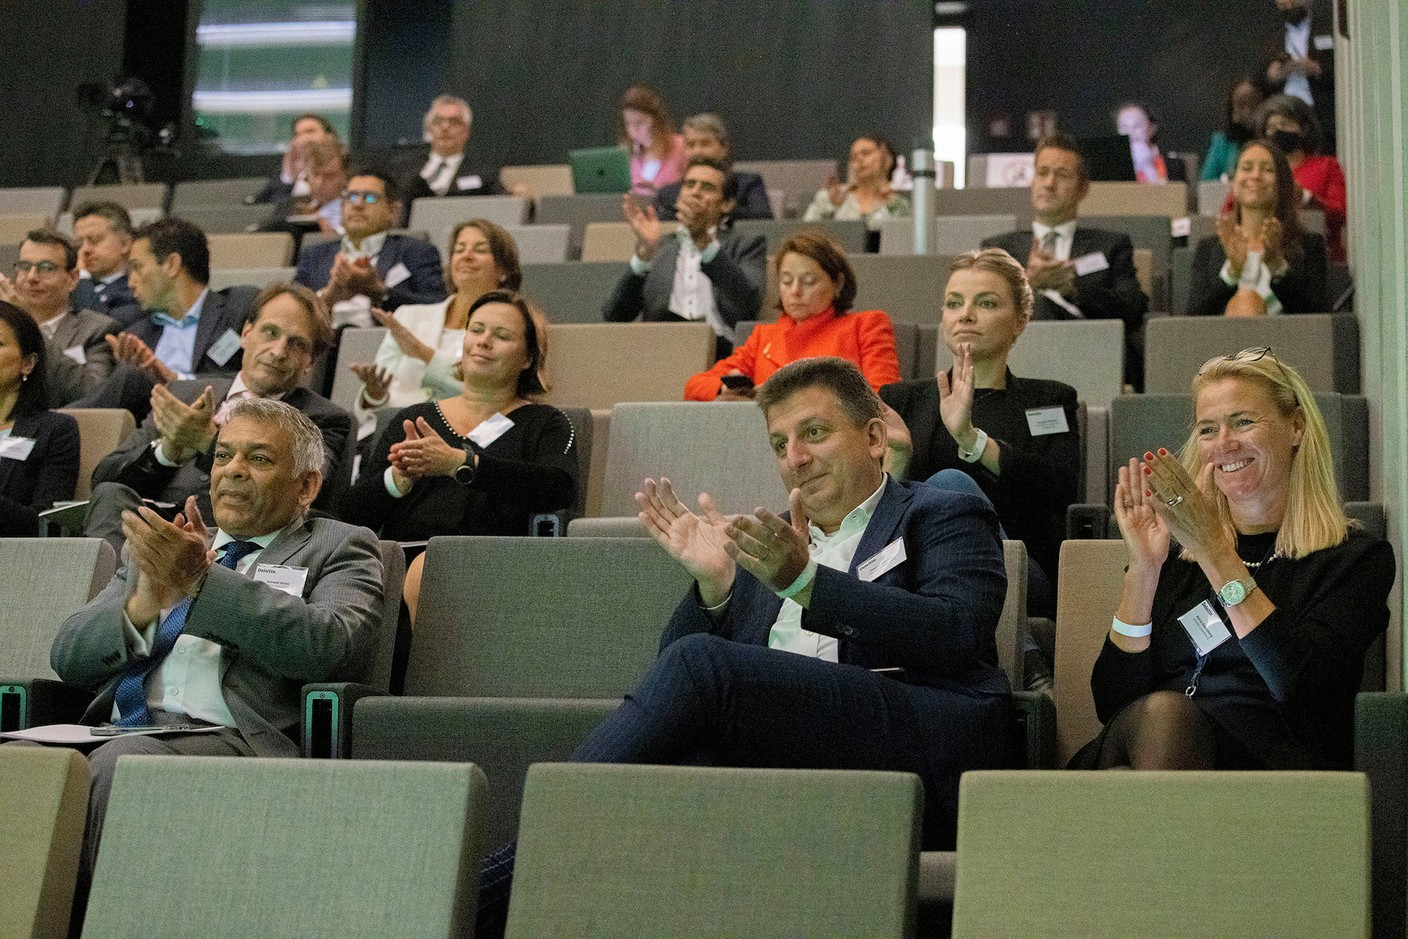 300 people, including 50 in person, attended the Horizon conference. (Photo: Nelson Coelho/Deloitte Luxembourg)